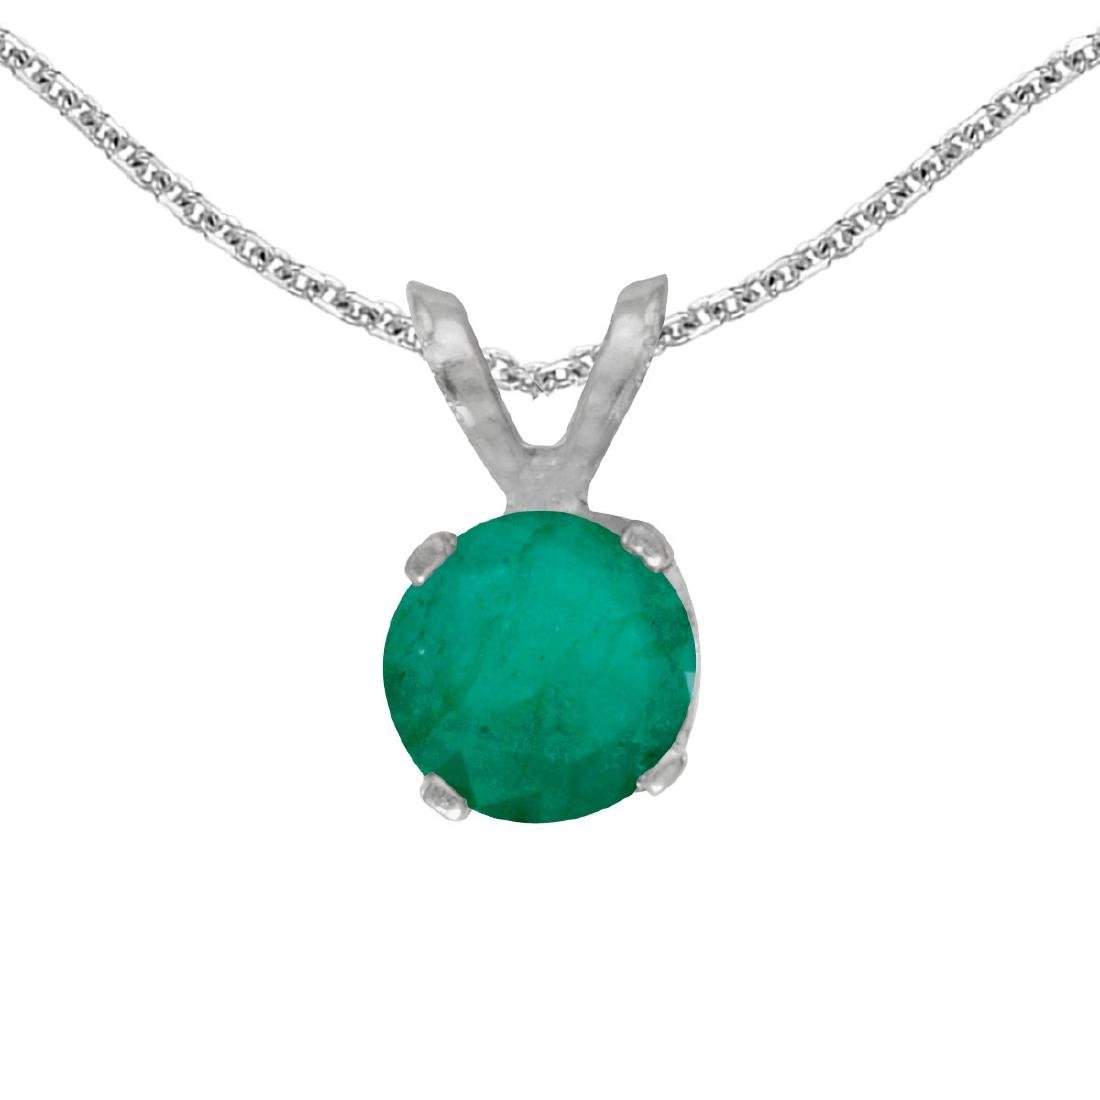 Certified 14k White Gold Round Emerald Pendant 0.33 CTW